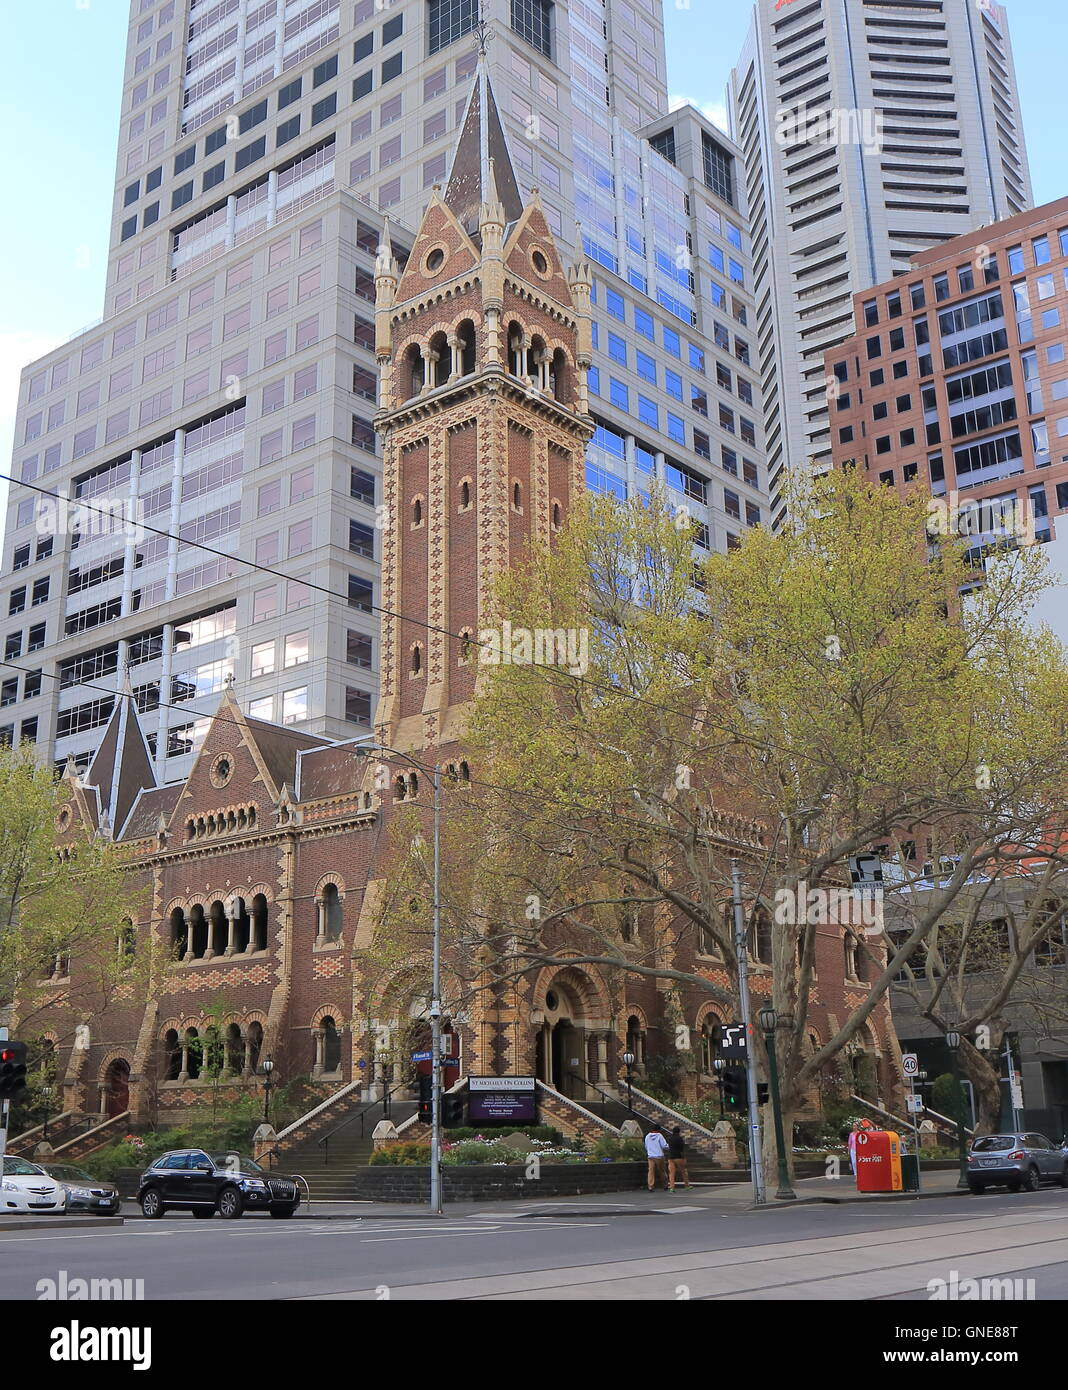 Historical St Michael's Uniting Church in downtown Melbourne Australia - Stock Image